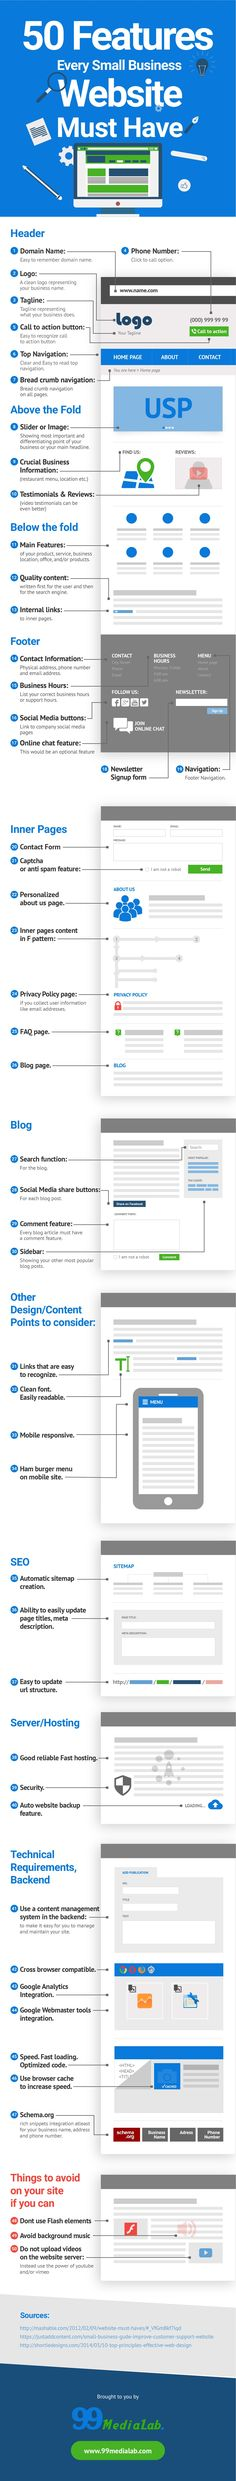 Important Features to Consider When You Build Your Website [Infographic]